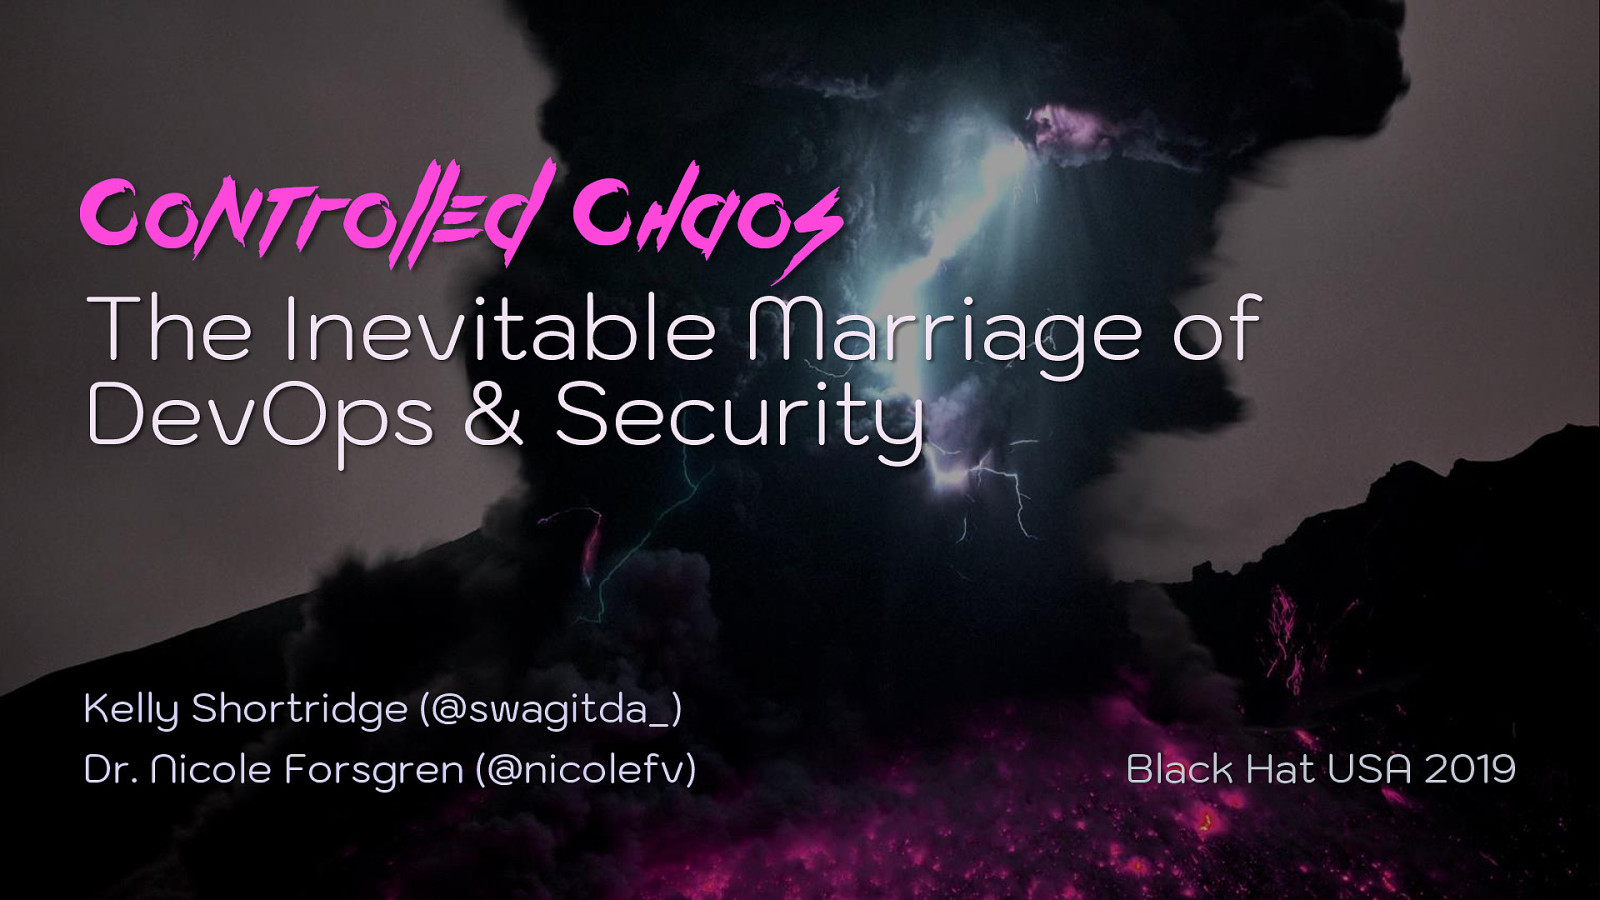 Controlled Chaos: The Inevitable Marriage of DevOps & Security